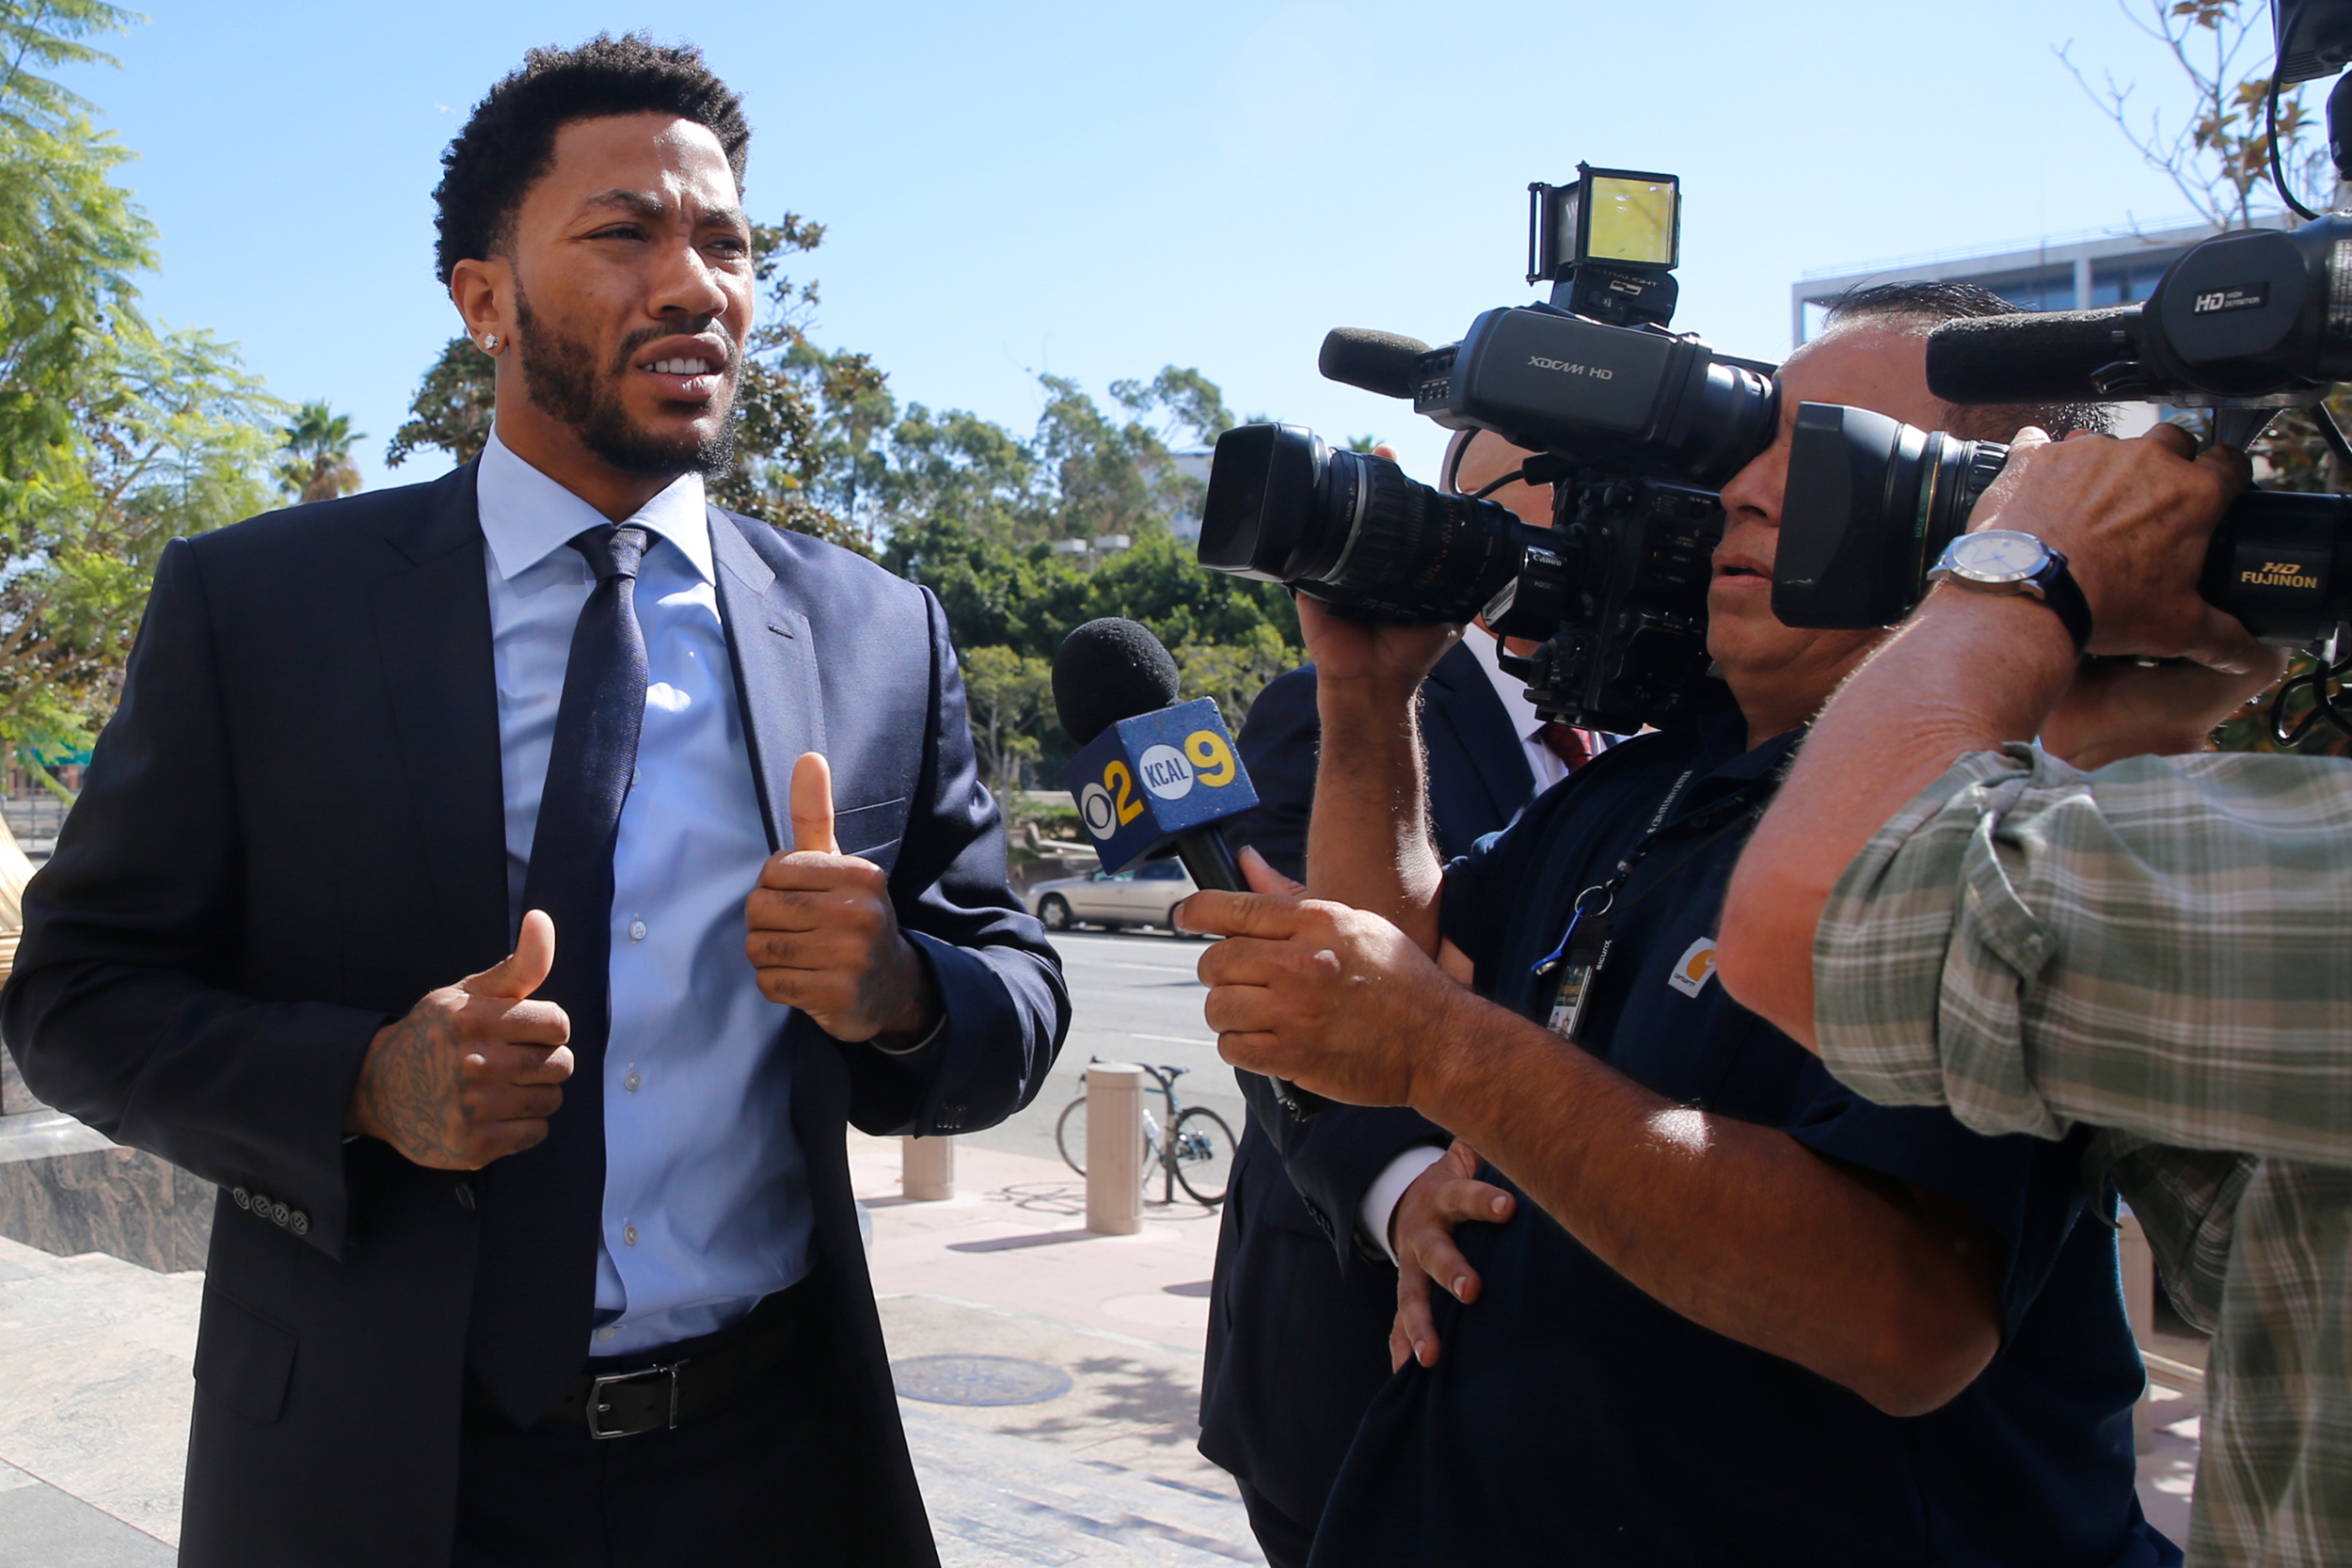 95863a4821e0 New York Knicks basketball player Derrick Rose arrives at U.S. District  Court in downtown Los Angeles on Thursday